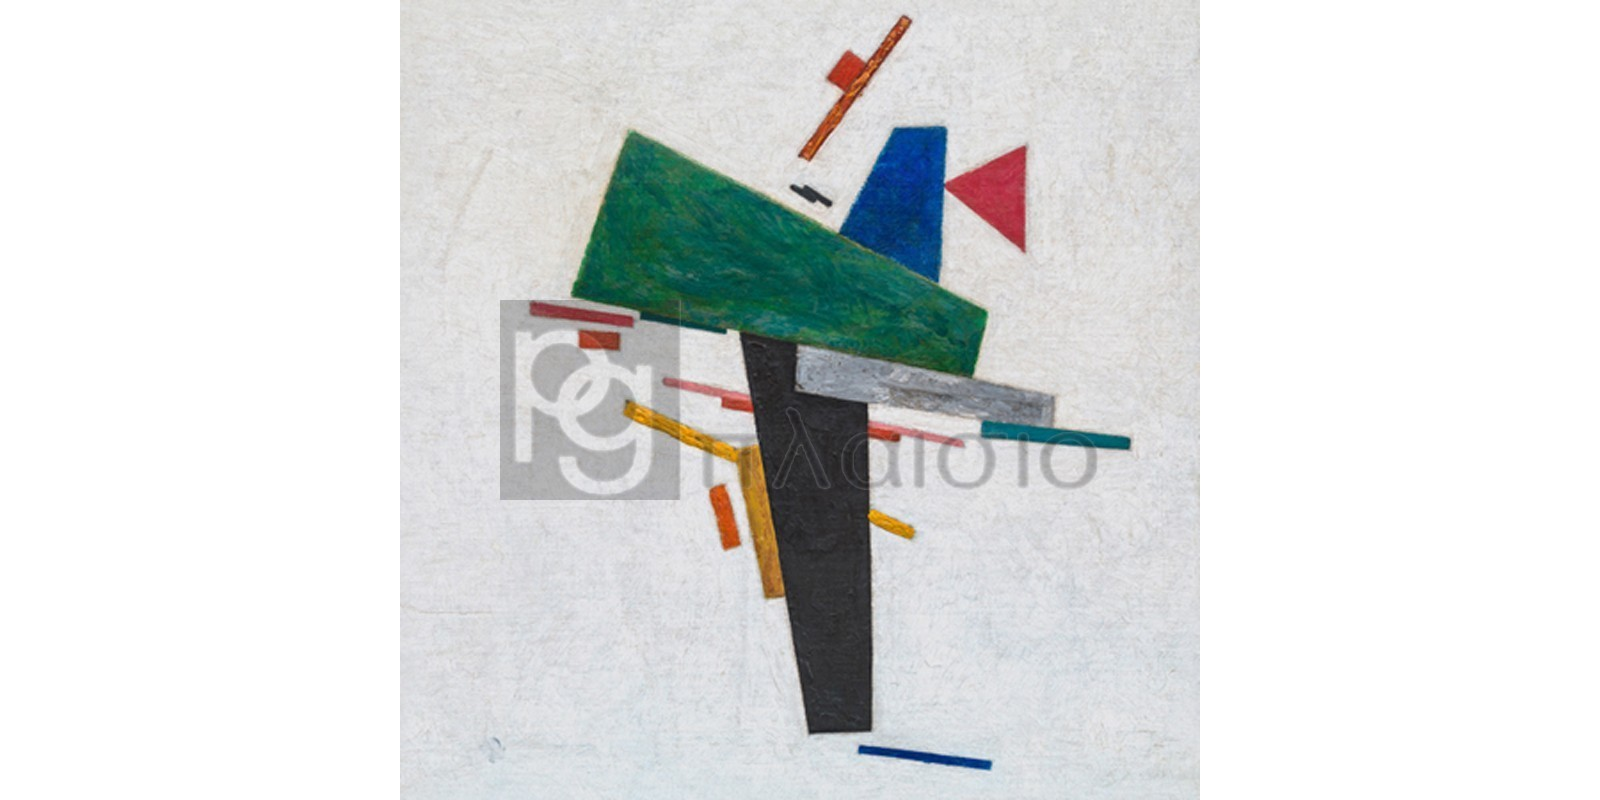 Kasimir Malevich - Untitled, 1916